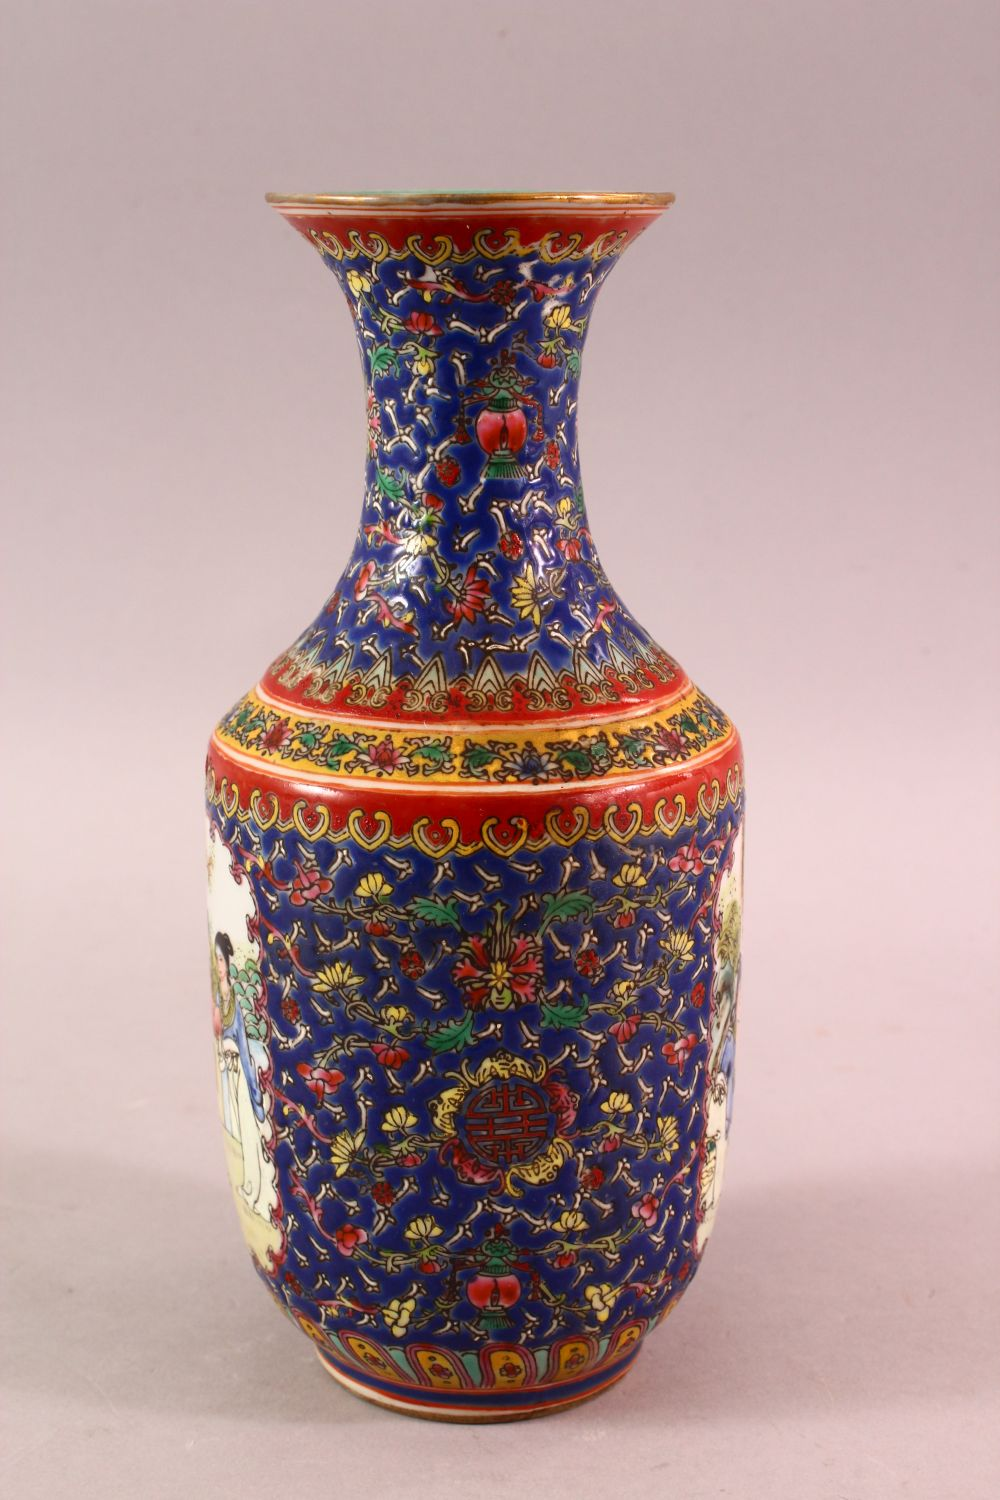 A CHINESE FAMILLE ROSE PORCELAIN VASE, with panels of figures and floral decoration, the base with a - Image 2 of 6